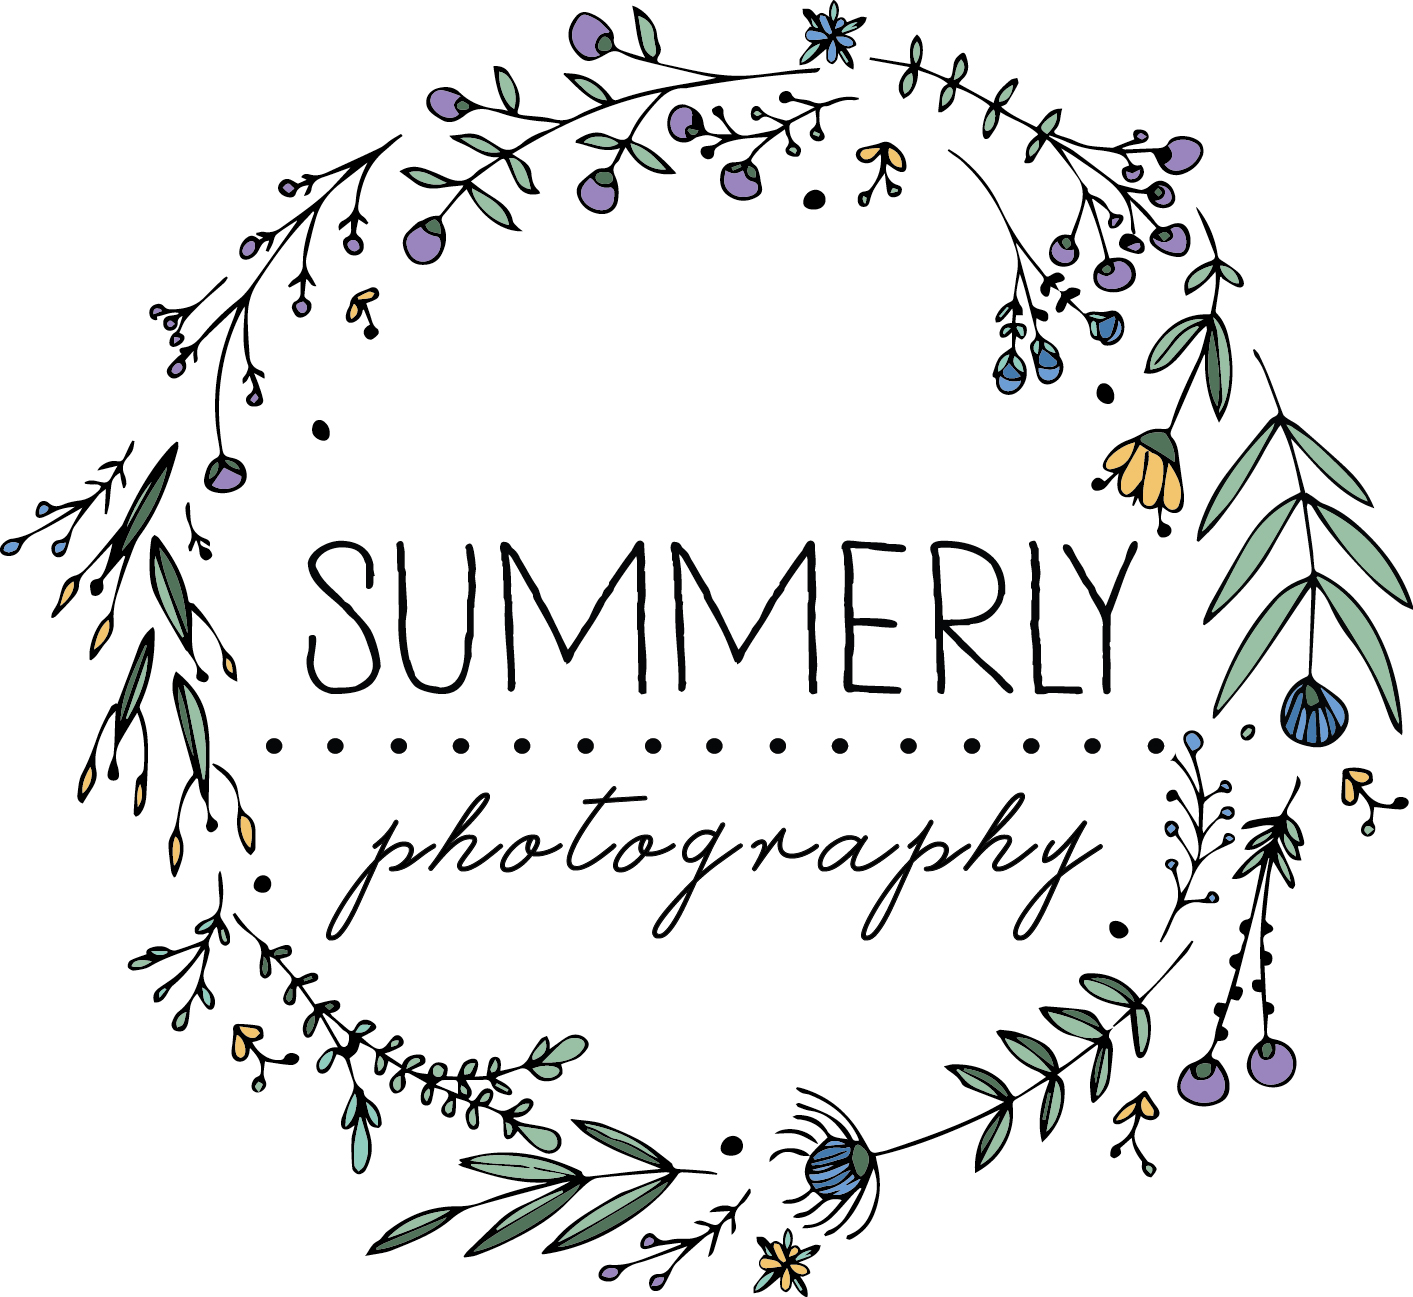 Summerly Photography